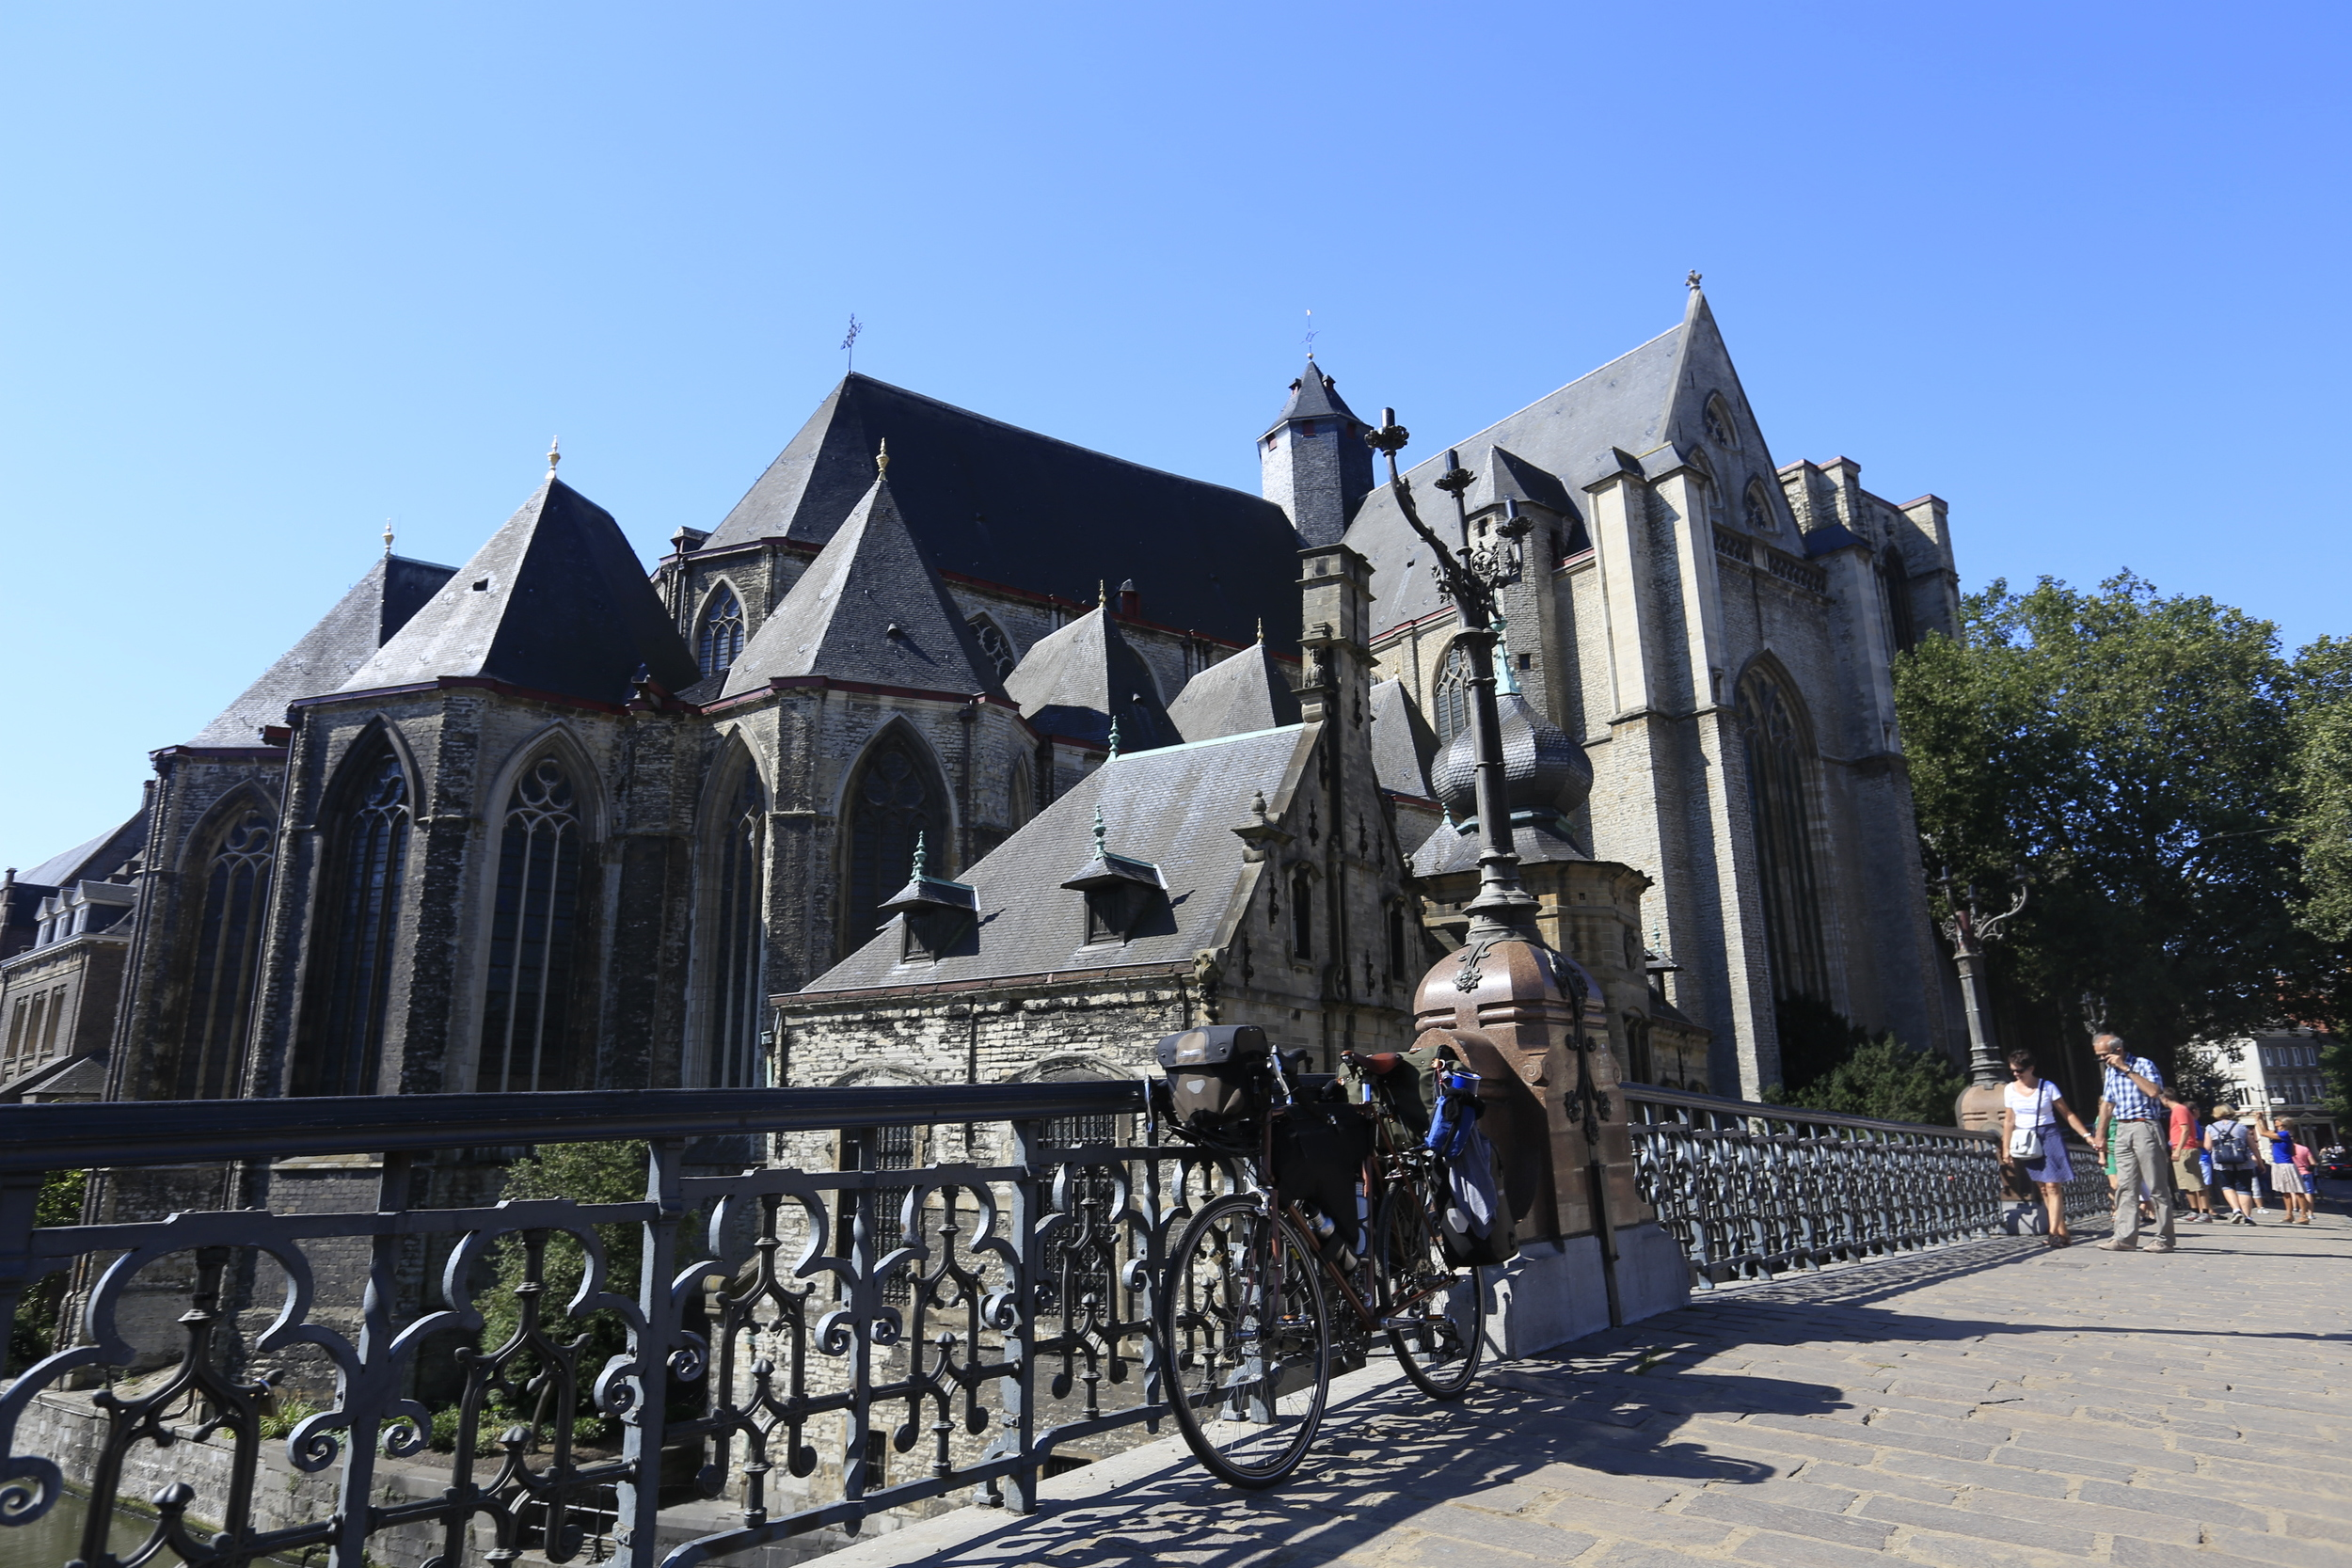 ghent, belgium, medieval architecture, photography, photography blog, cycling blog, bikepacking blog, canon, canon 6d, canon wide lens, canon 16-35mm